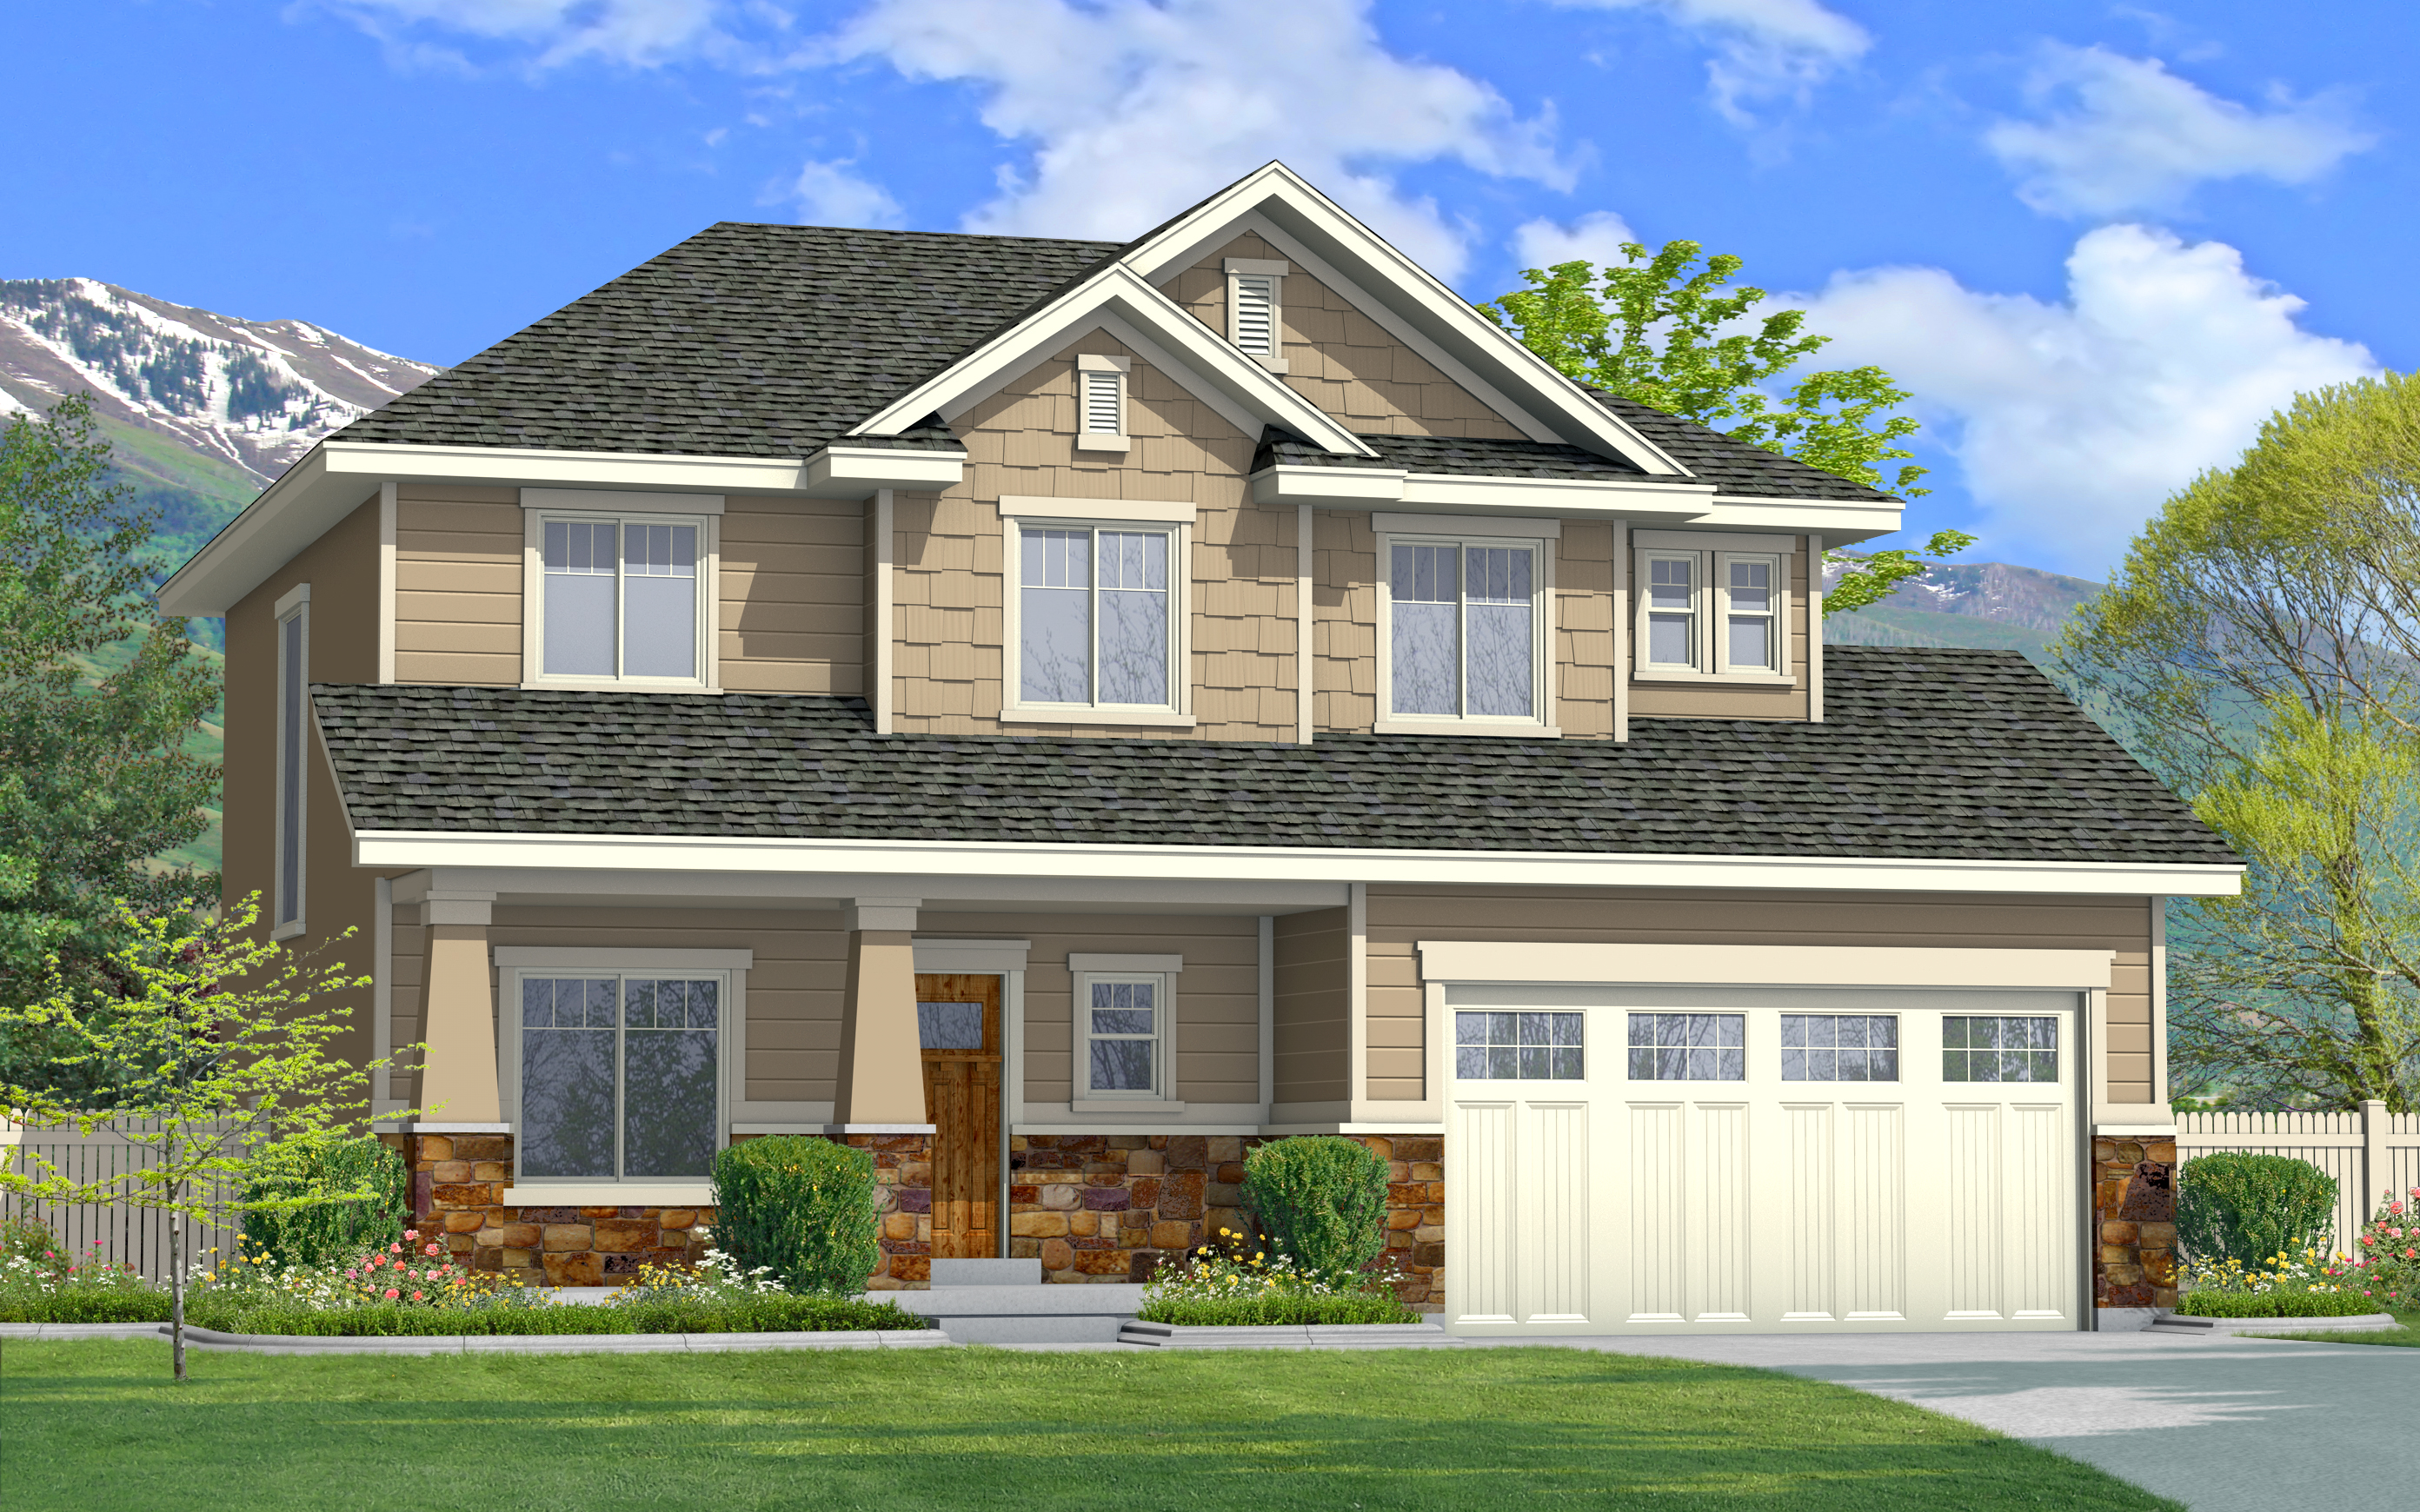 Home Designs and Home Builders in Utah | Perry Homes on rambler house plans and designs, mid century modern room designs, rambler style house designs, custom ranch home designs, rambler house exterior designs,